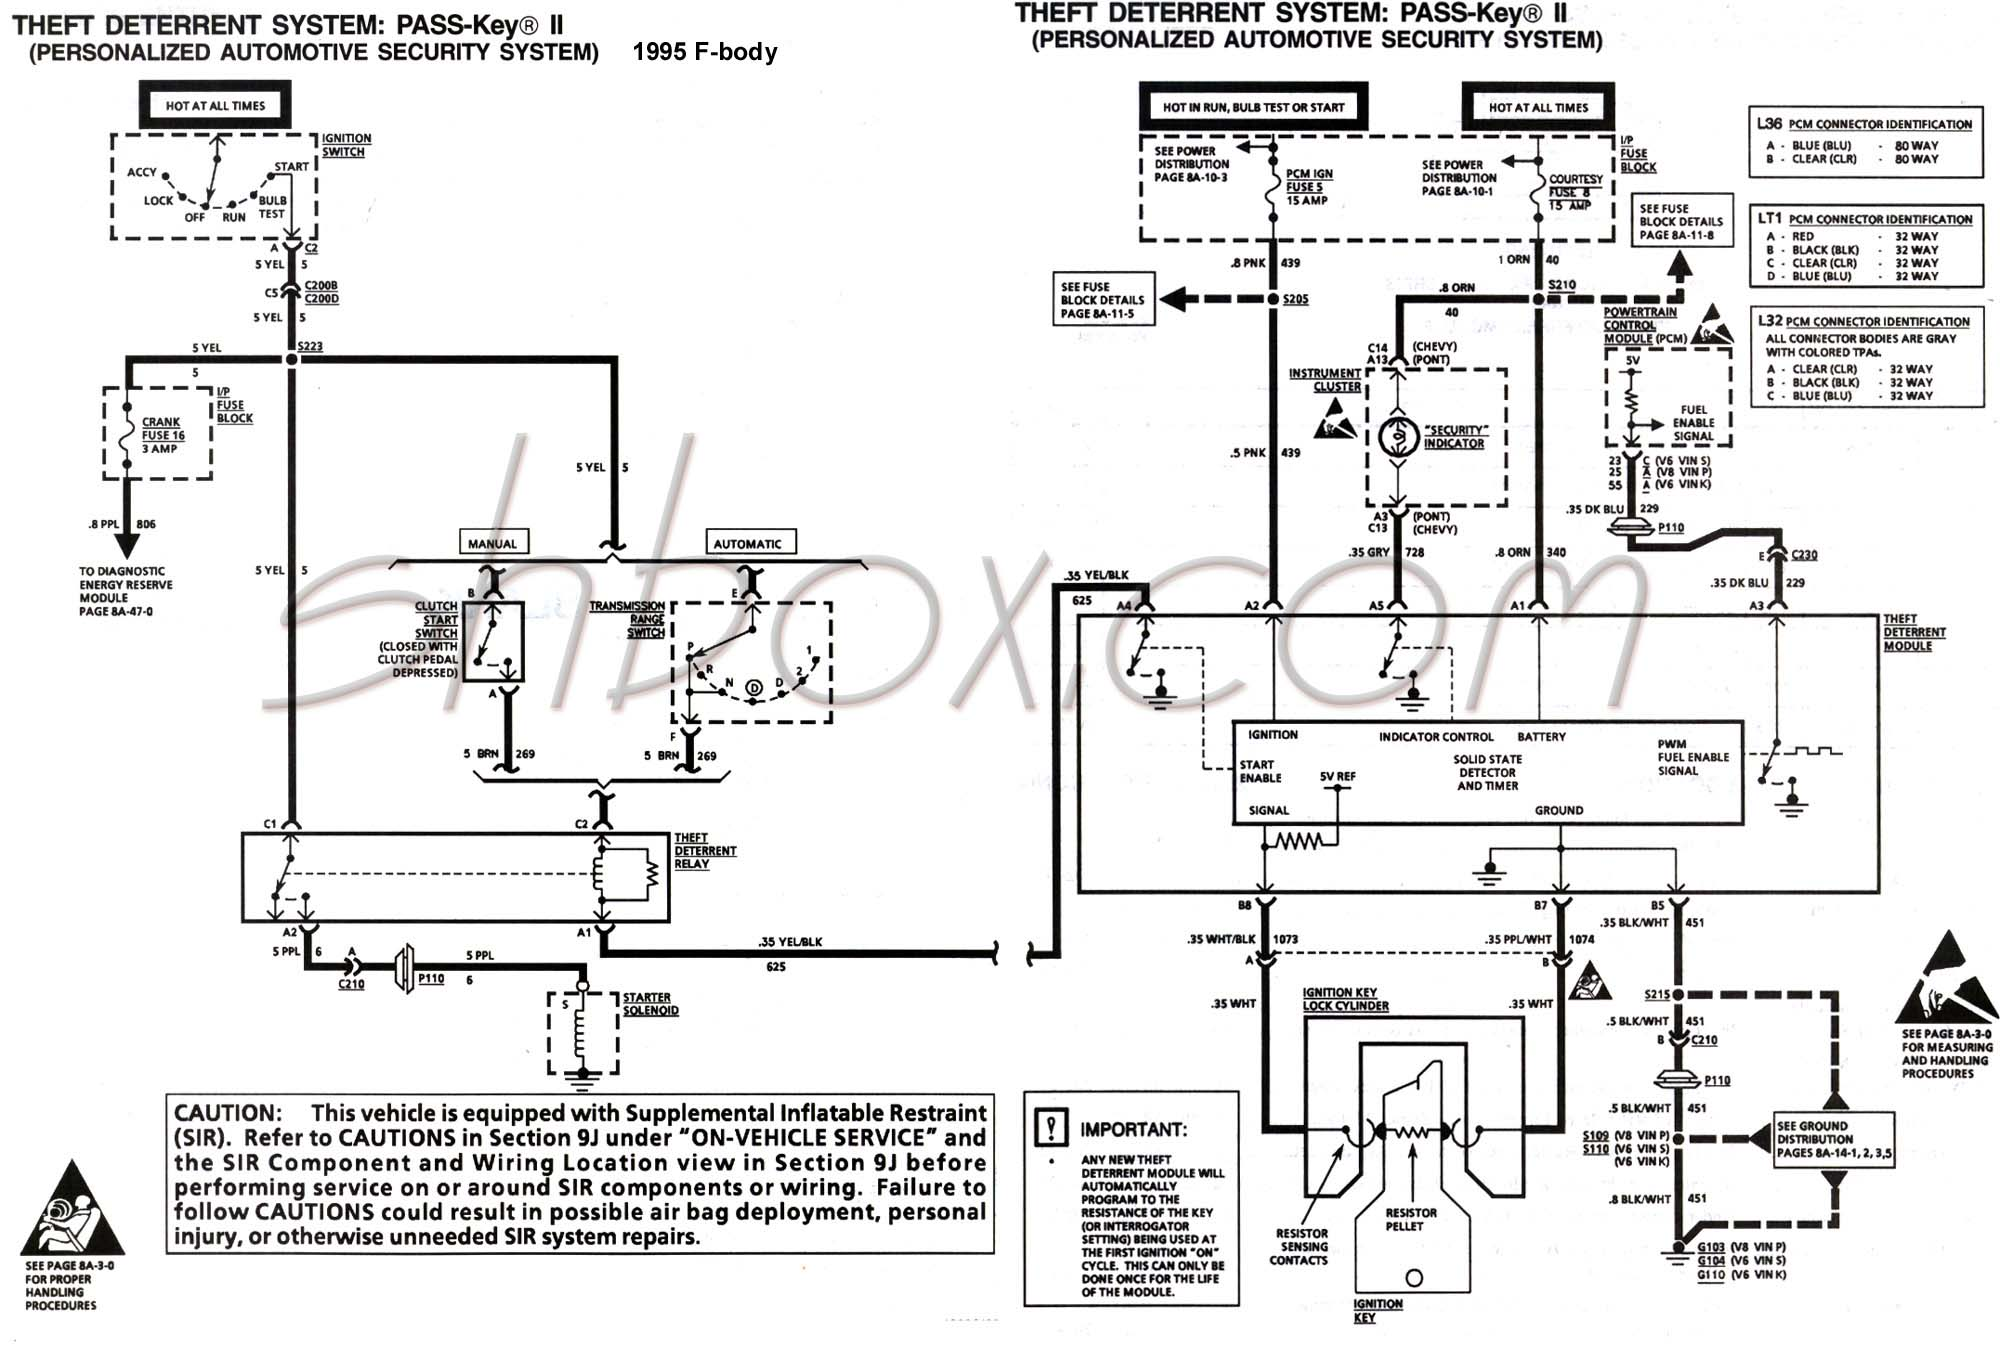 hight resolution of 4th gen lt1 f body tech aids 1996 chevrolet camaro wiring diagram